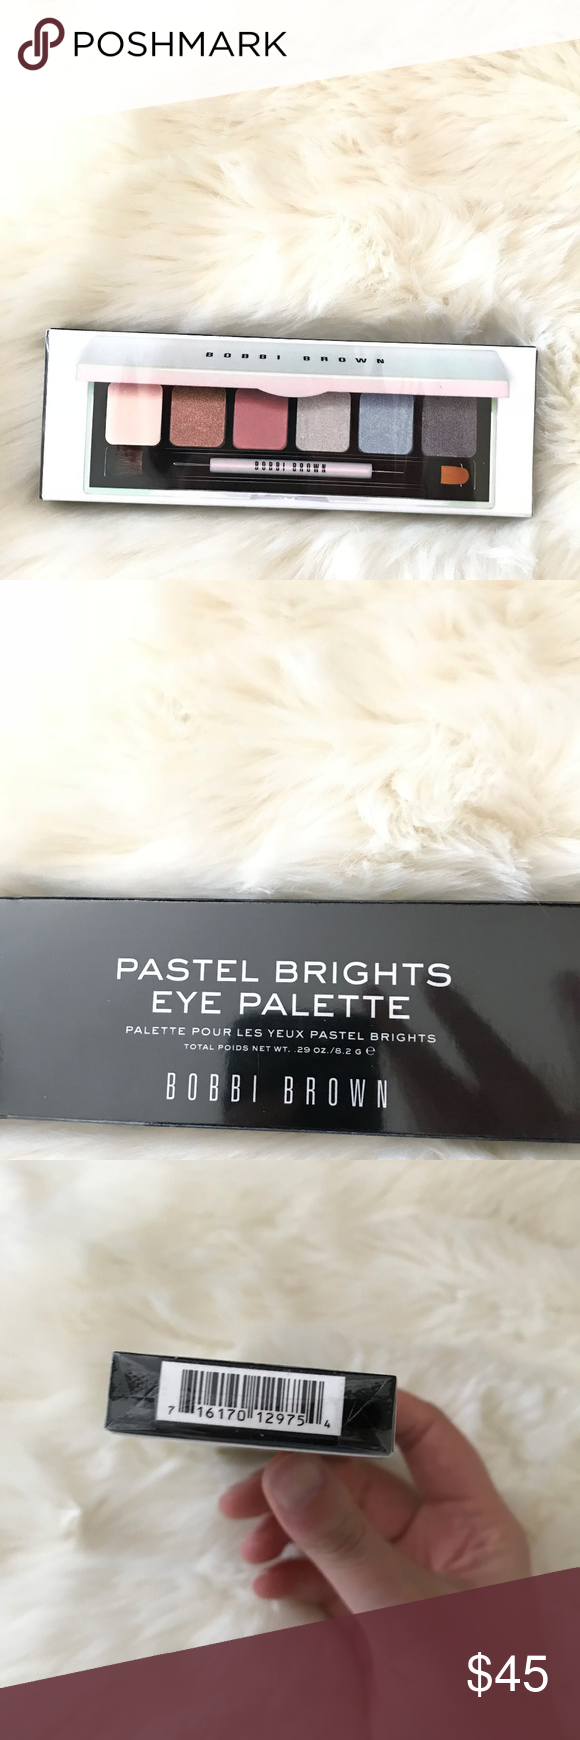 Bobbi Brown Pastel Brights Eye Palette New Makeup With six